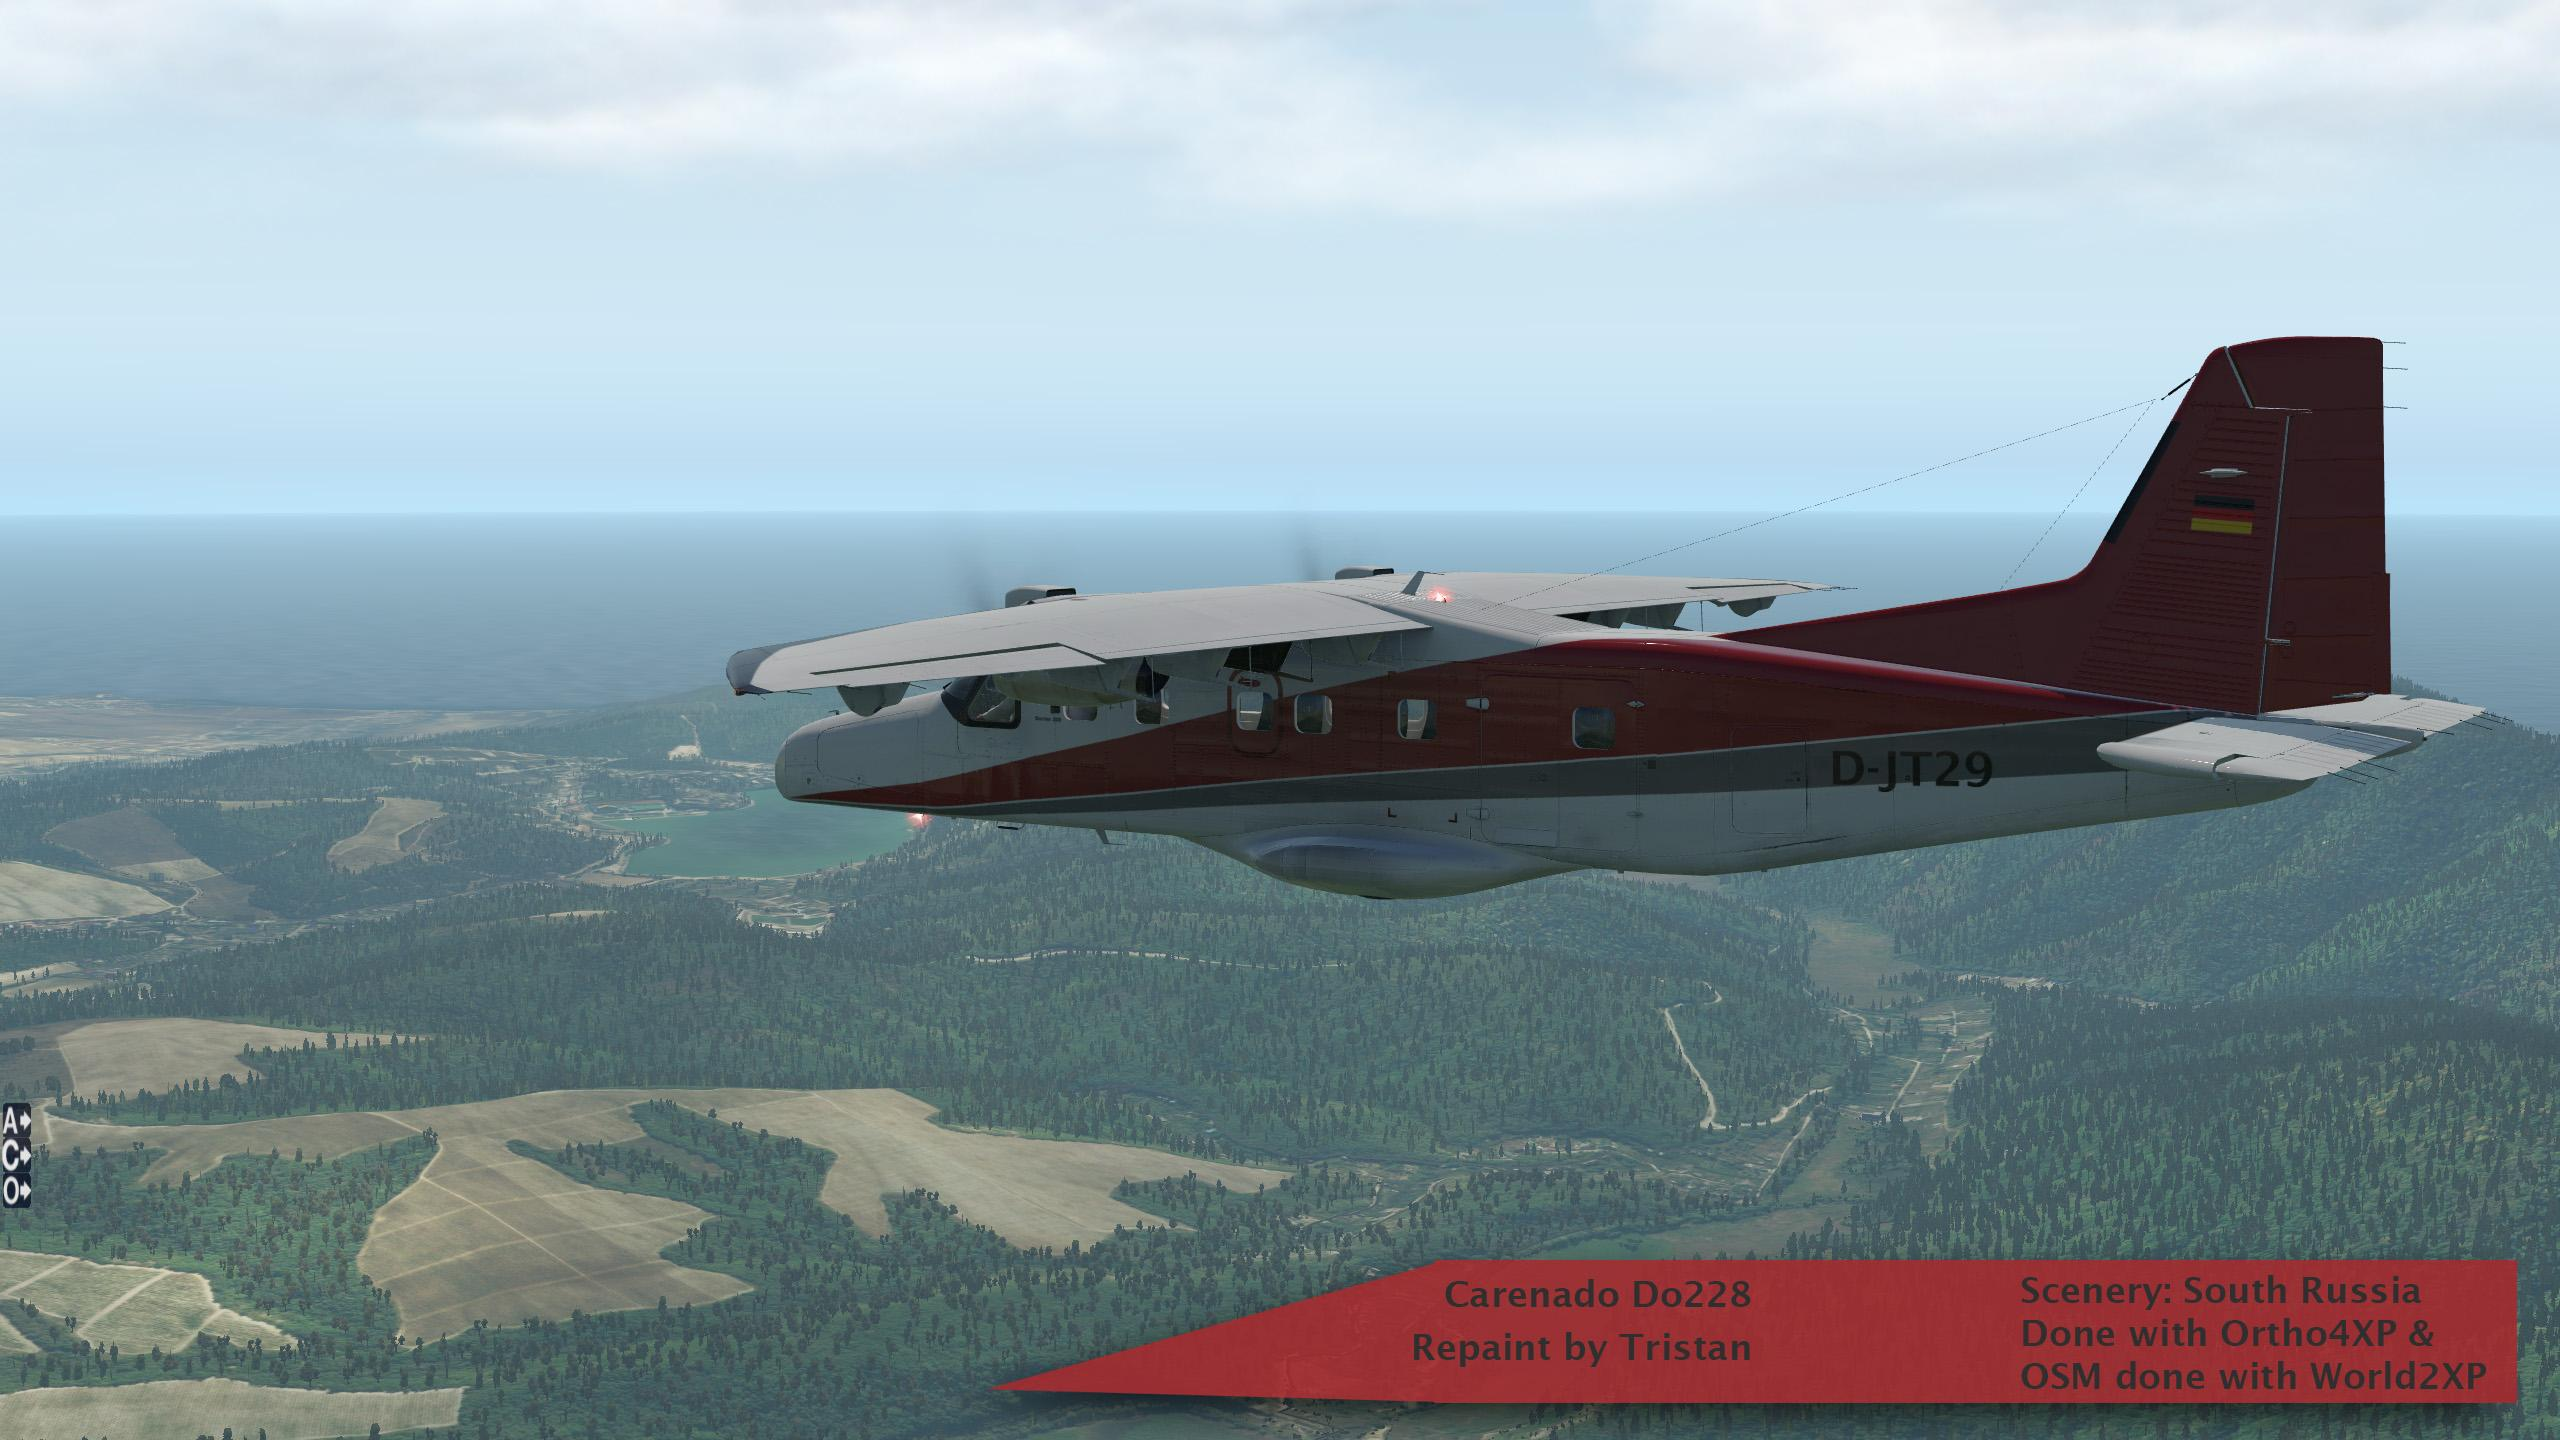 Carenado Do228 repainted as AirJumper - Carenado Paints - X-Plane